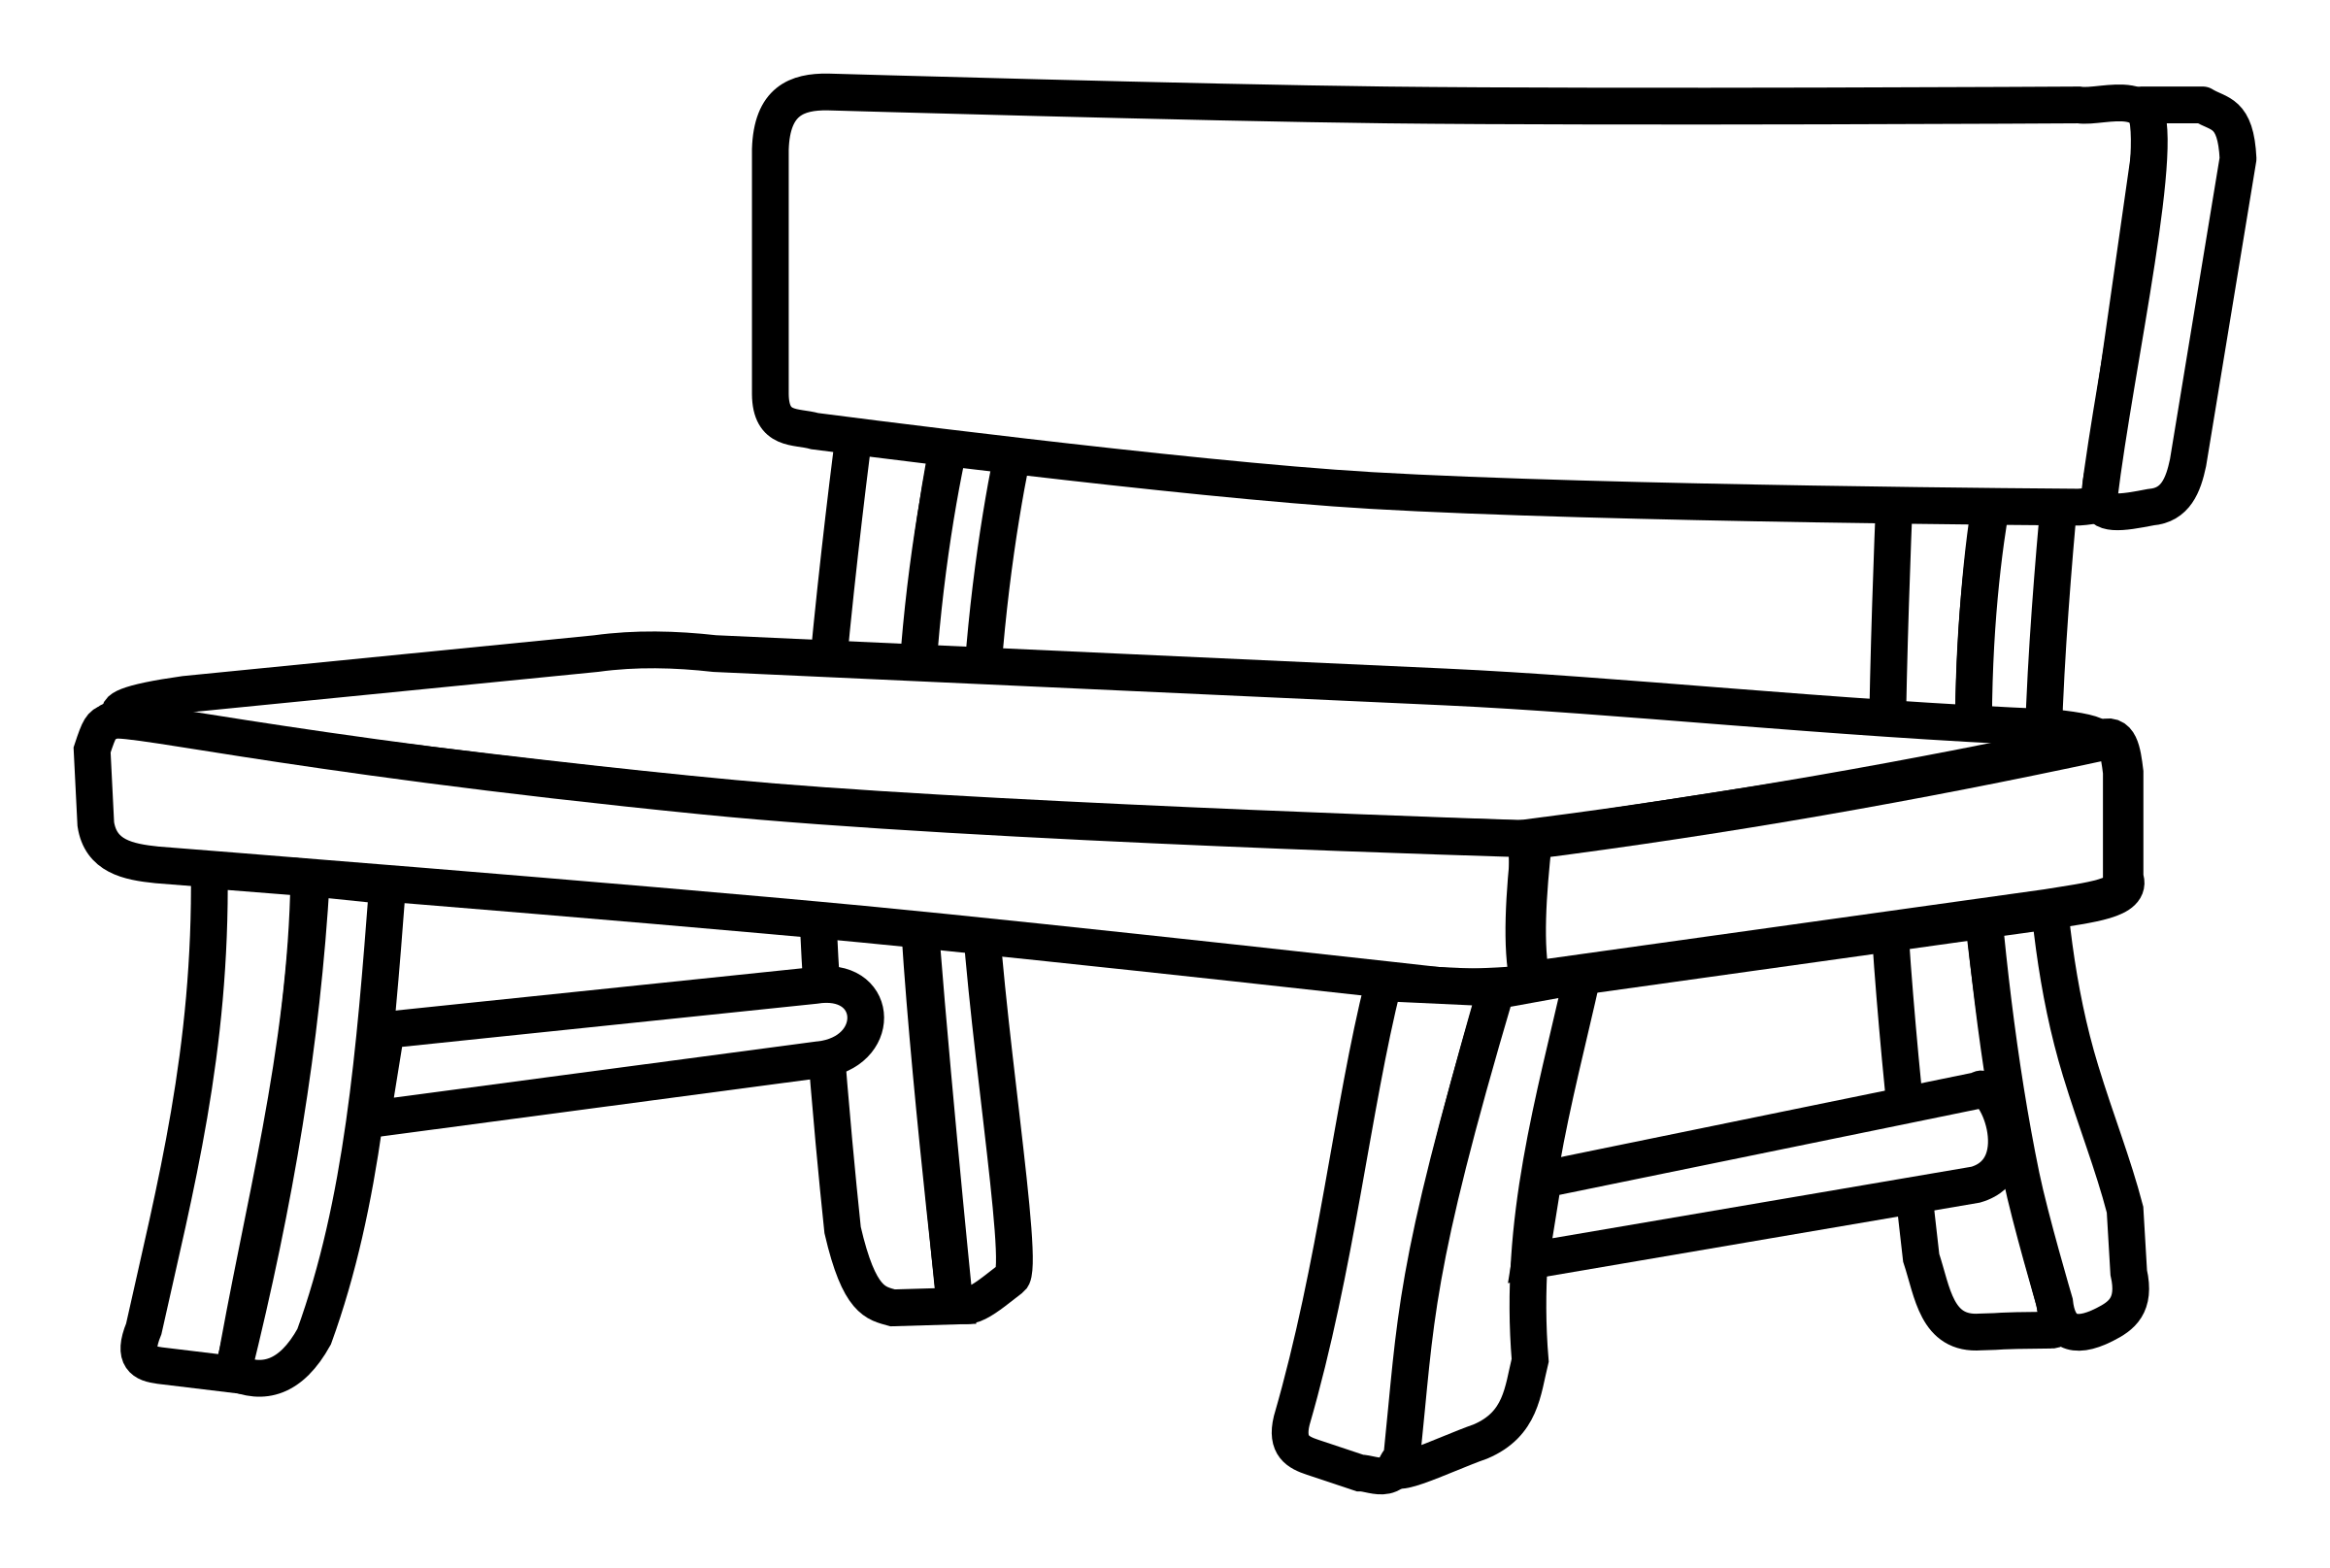 Bench clipart #12, Download drawings